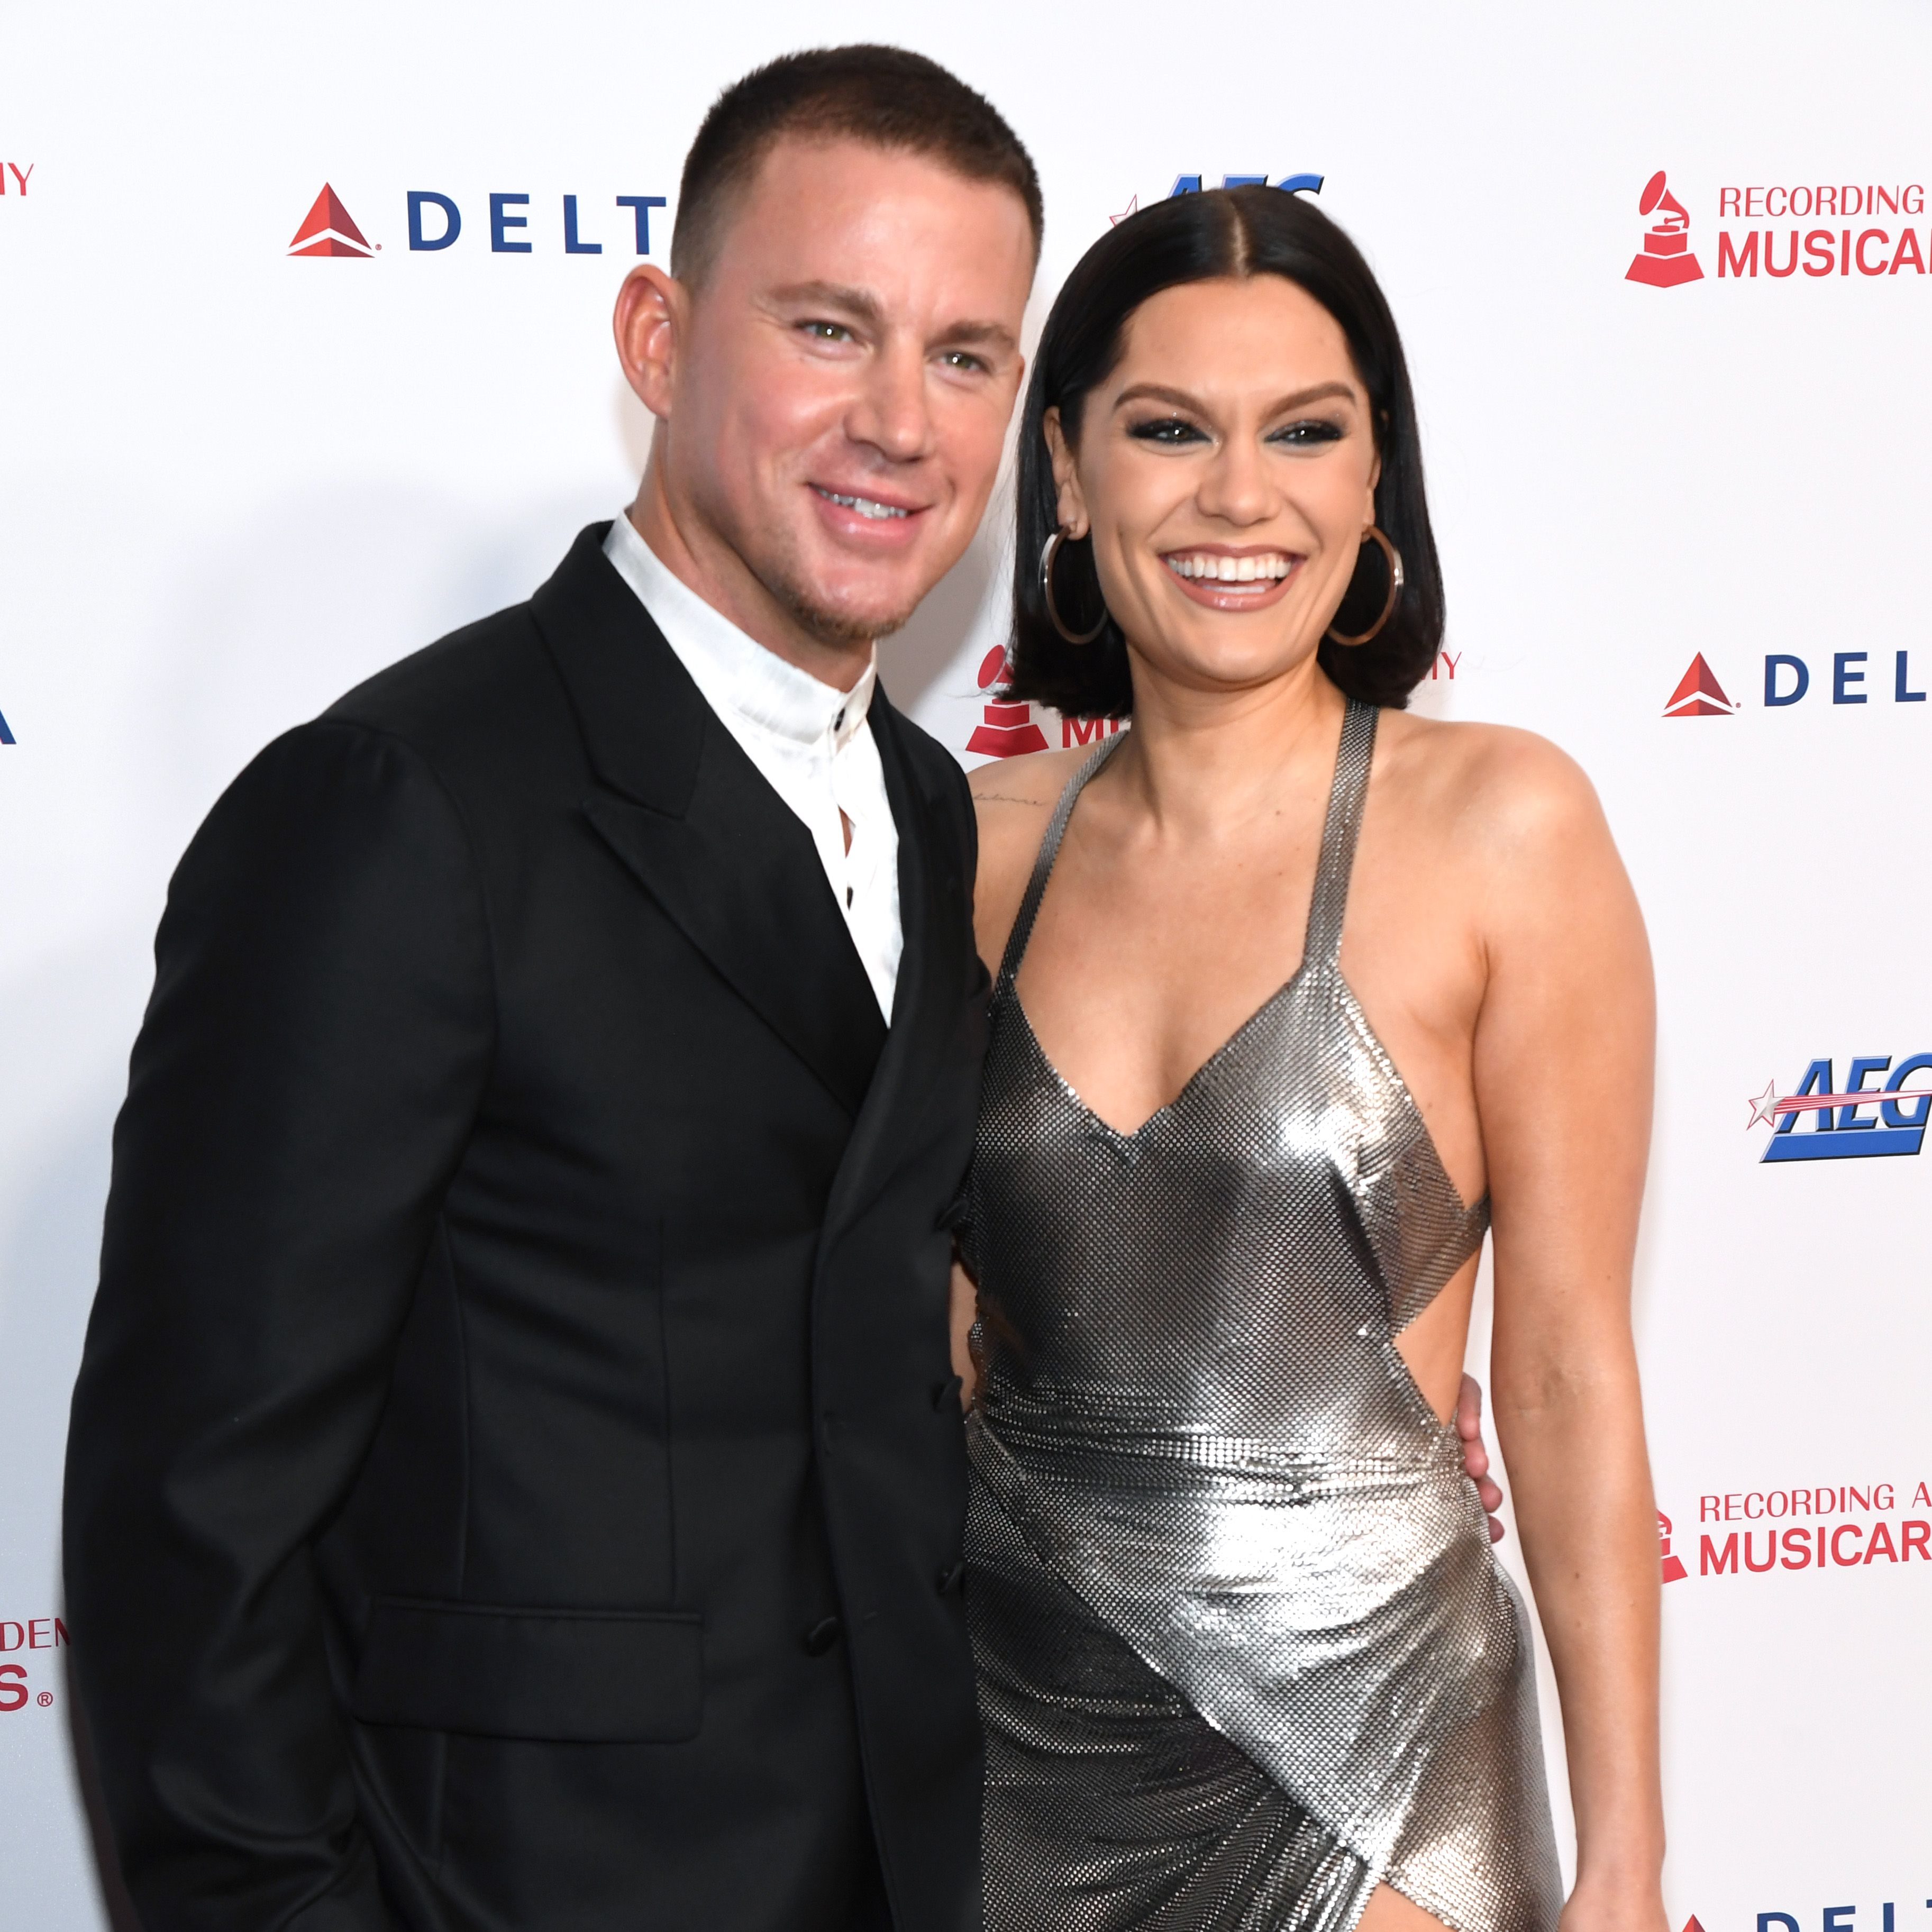 Channing Tatum and Jessie J pose for a photo.